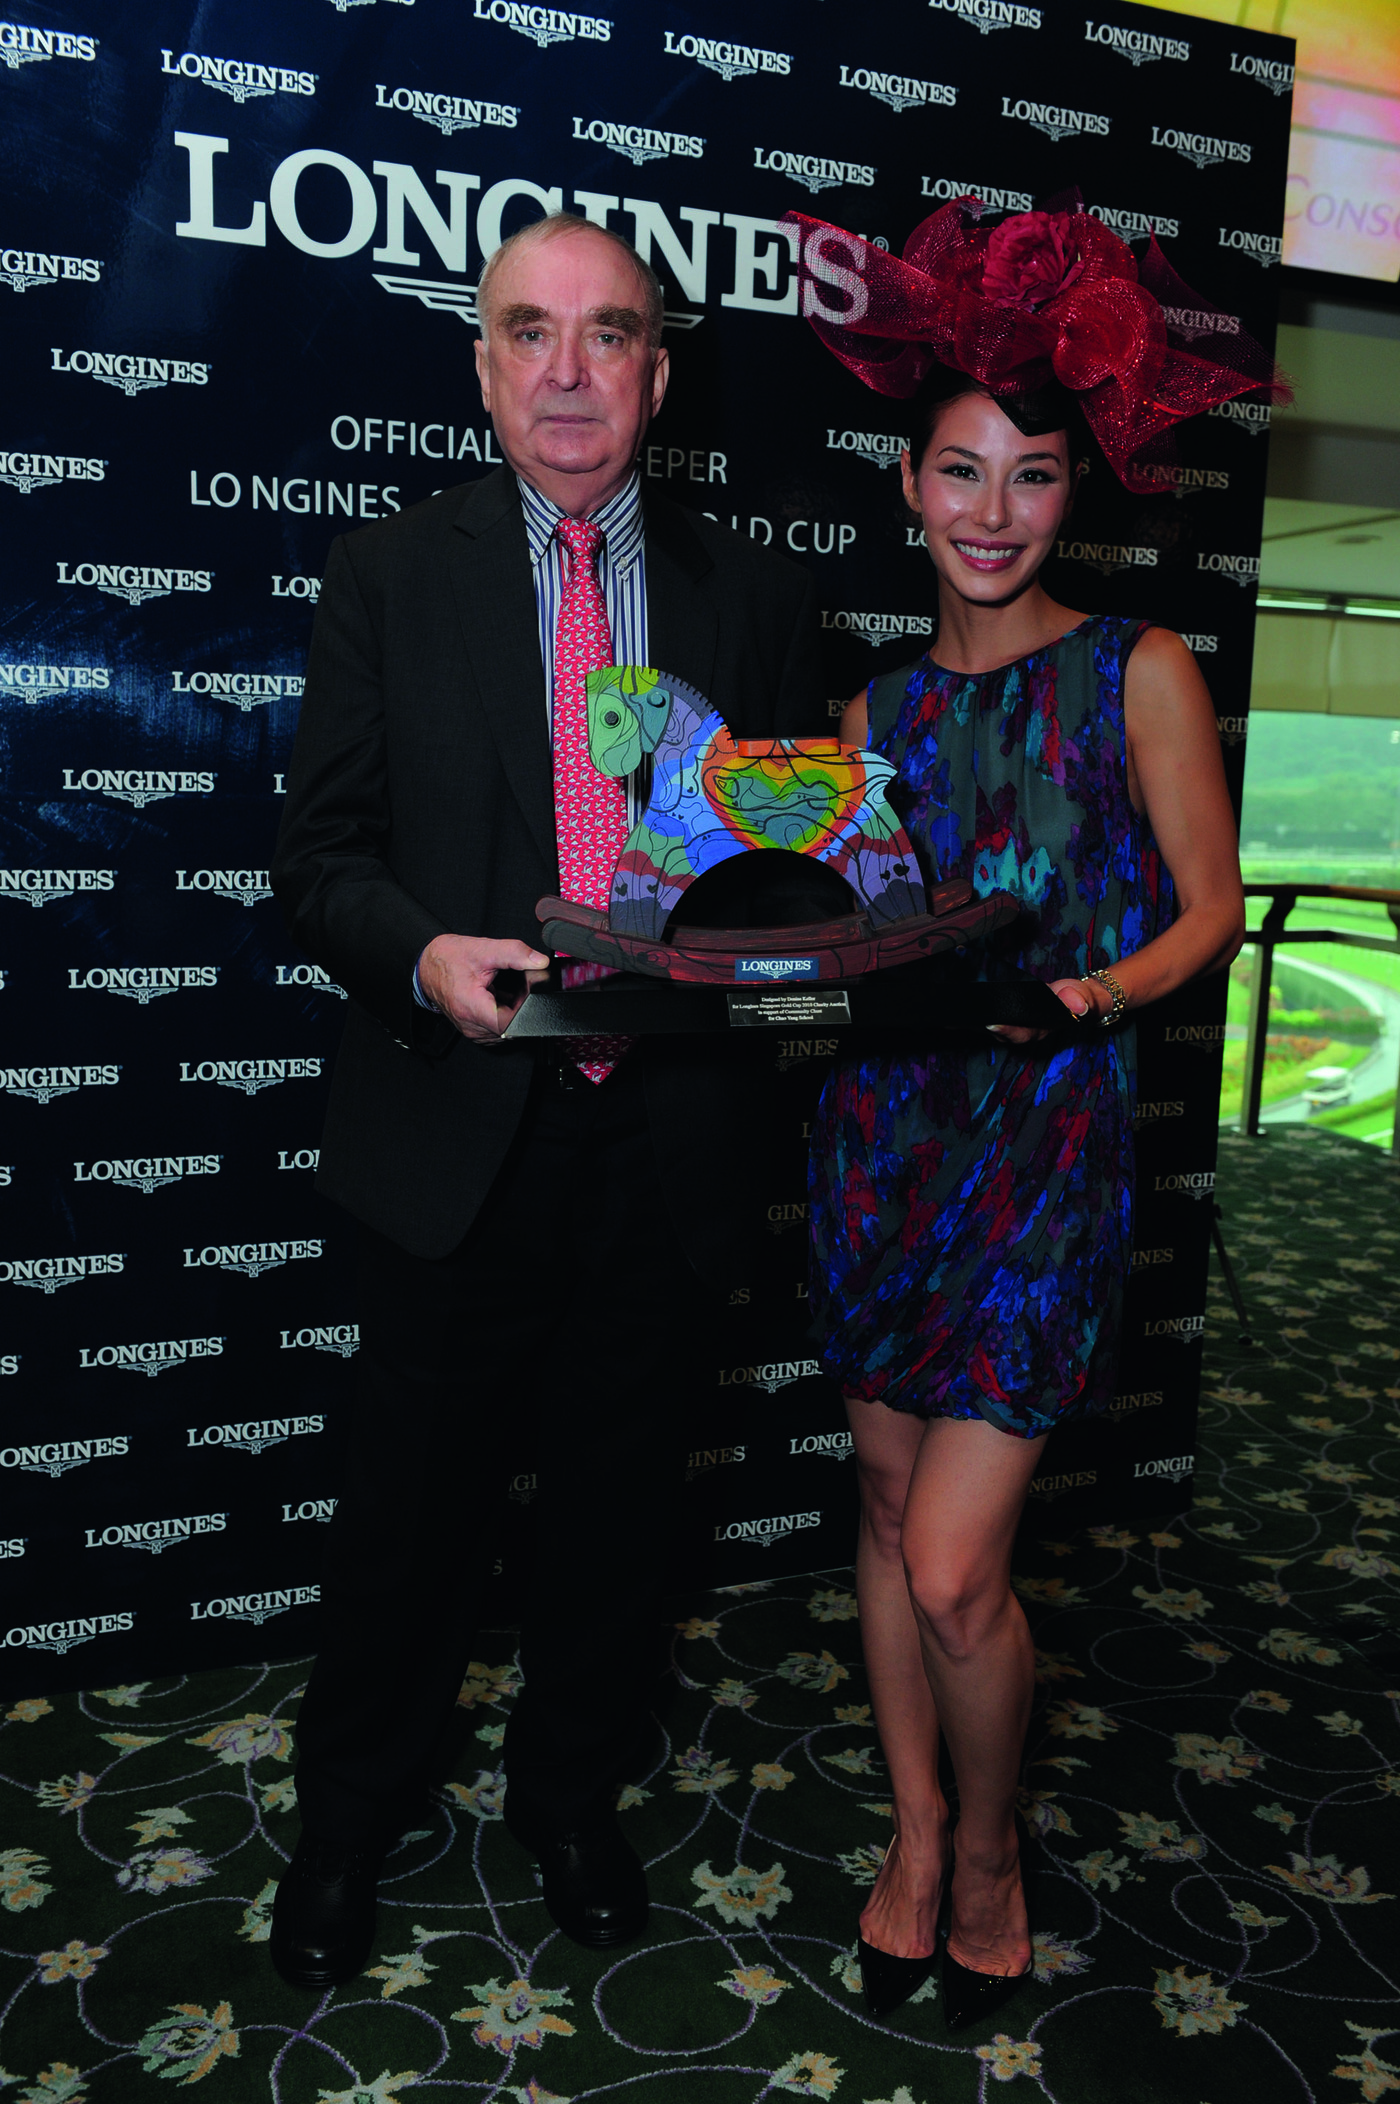 Longines Flat Racing Event: Longines embarks on landmark partnership with the Singapore Turf Club and launches the Longines Singapore Gold Cup 2